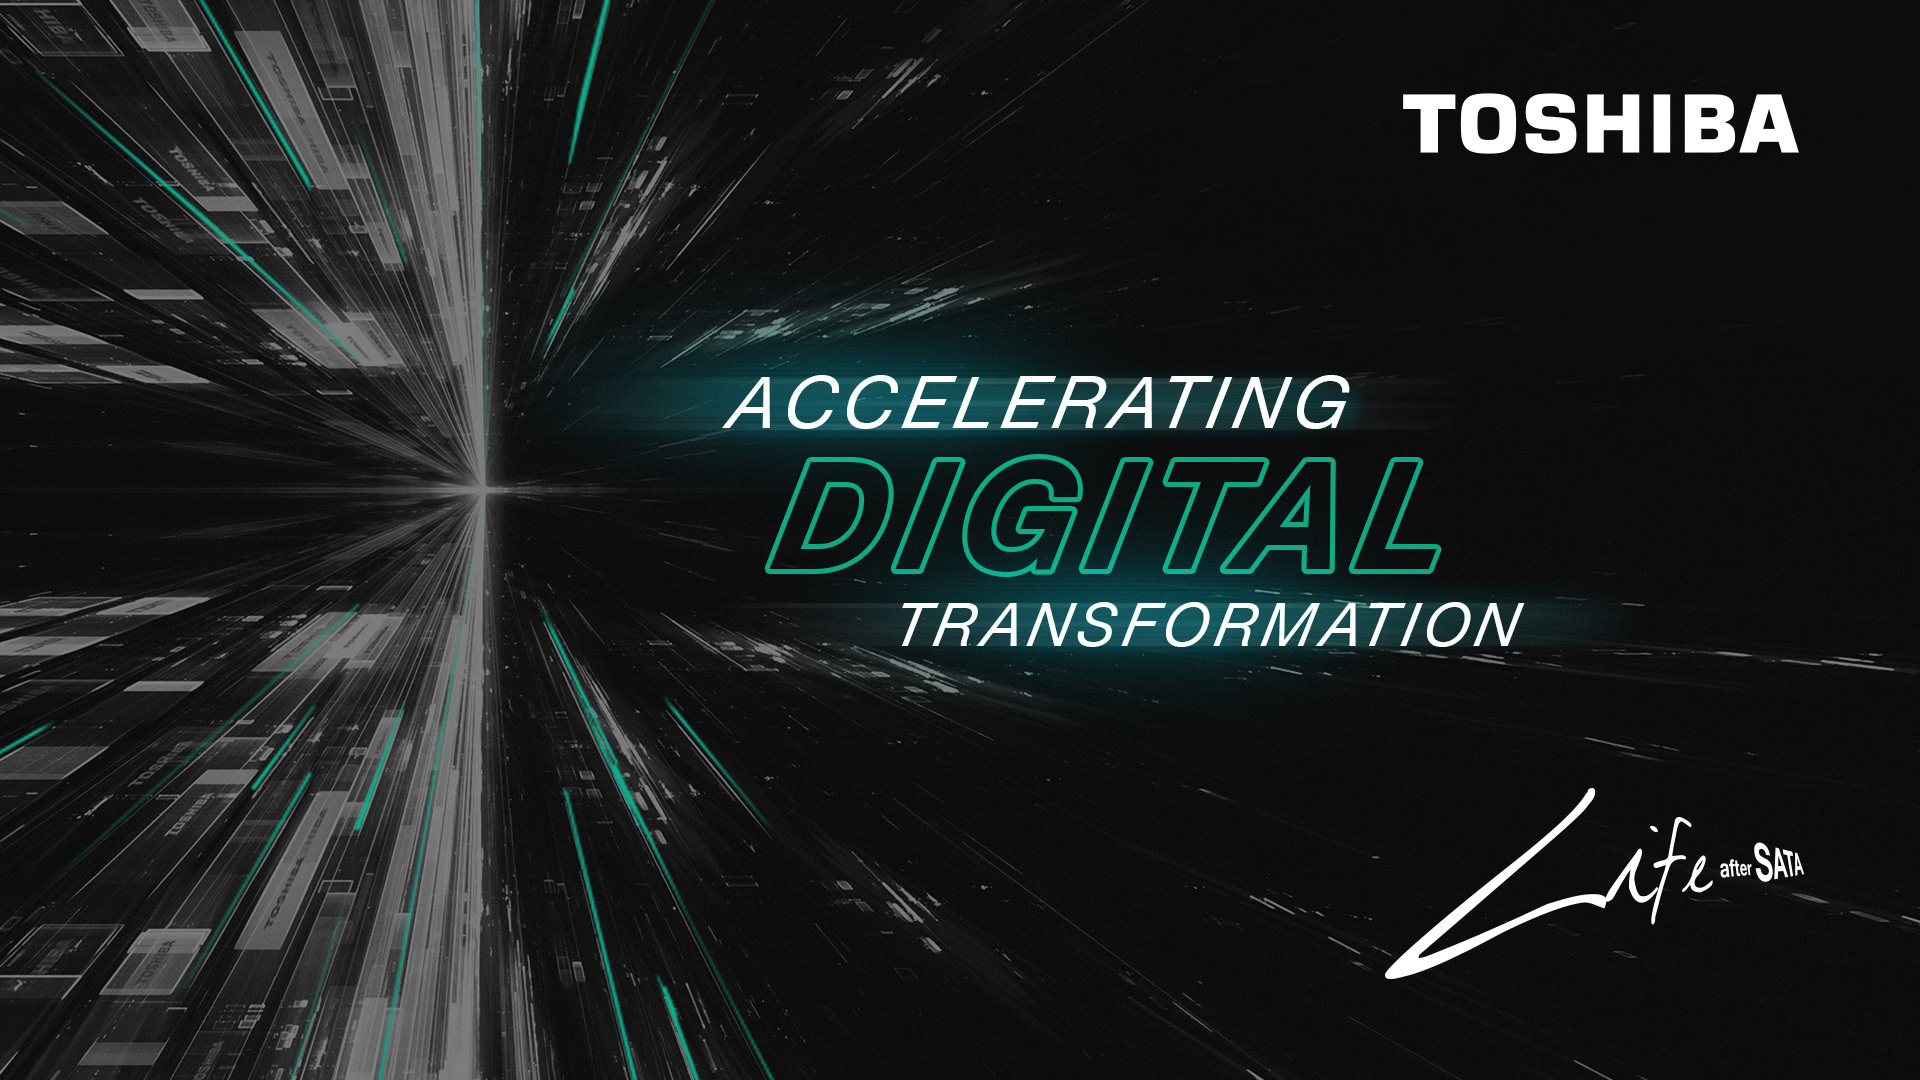 Toshiba Memory America Showcases Lineup Of Ssd Software Solutions Targeted To The Modernization Of Data Centers At Hpe Discover 2019 Business Wire